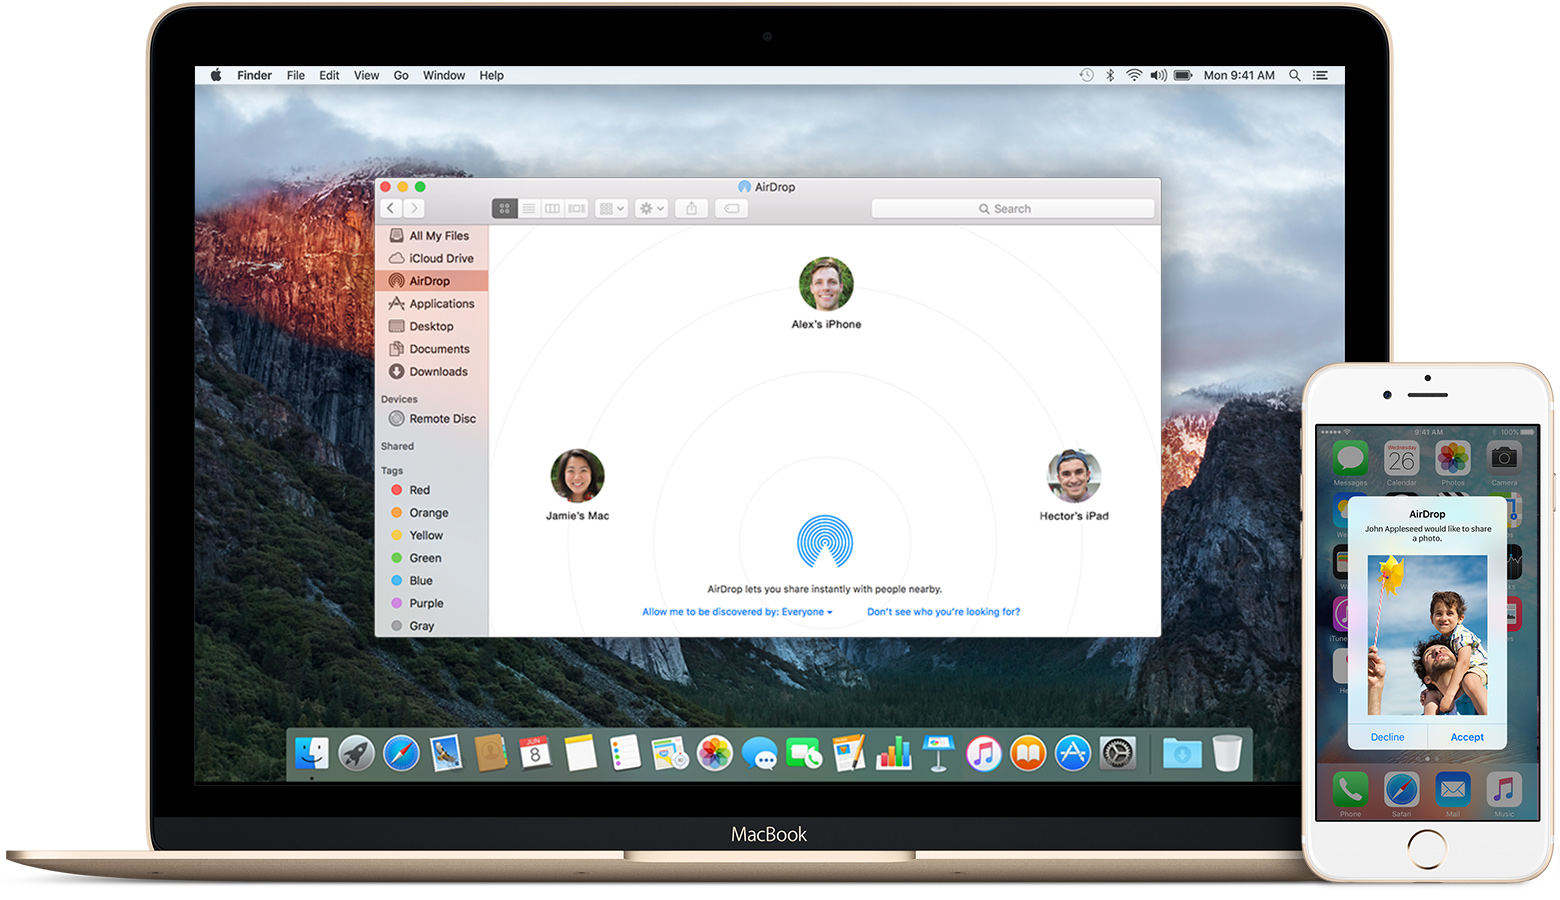 share videos from Mac AirDrop to iPhone